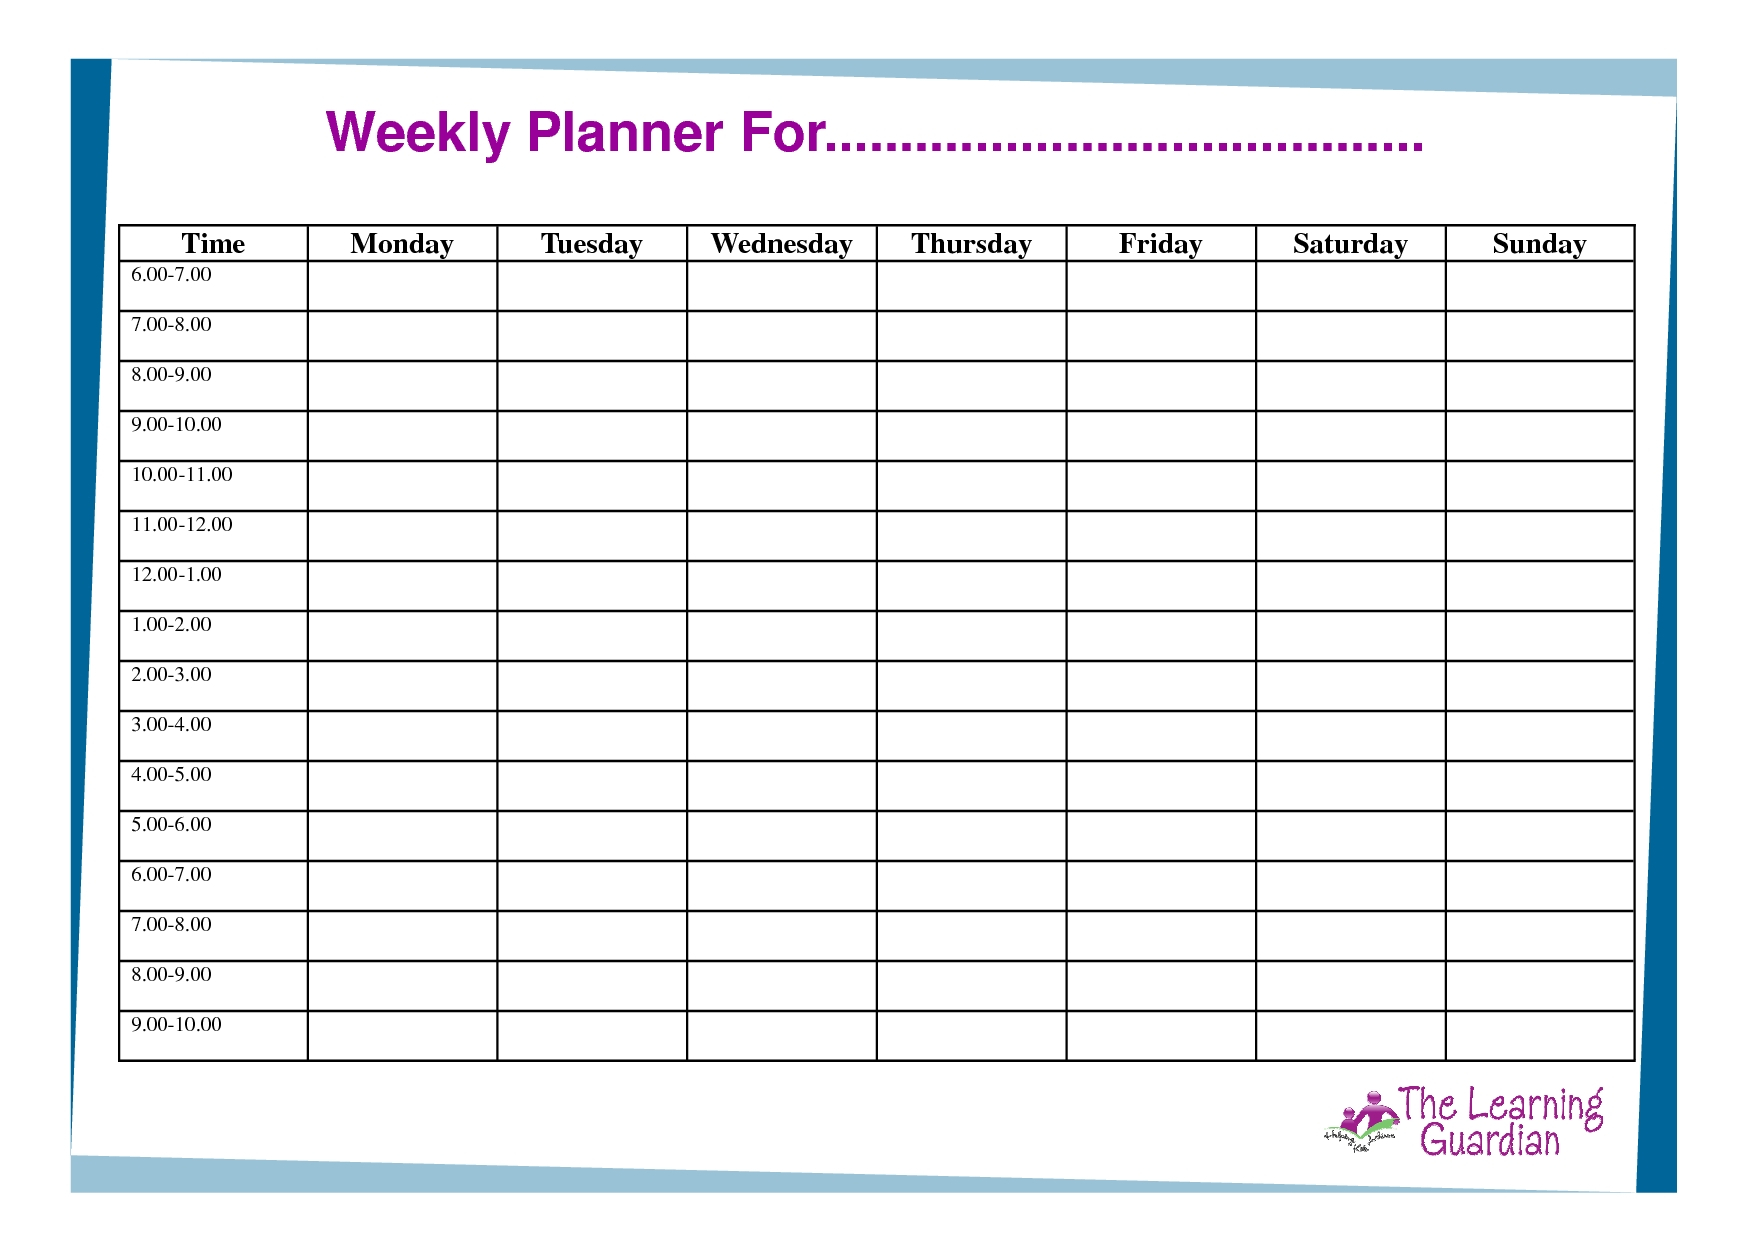 Blank Weekly Calendar Monday Through Friday Schedule Template Free throughout Weekly Blank Calendar Monday Through Friday